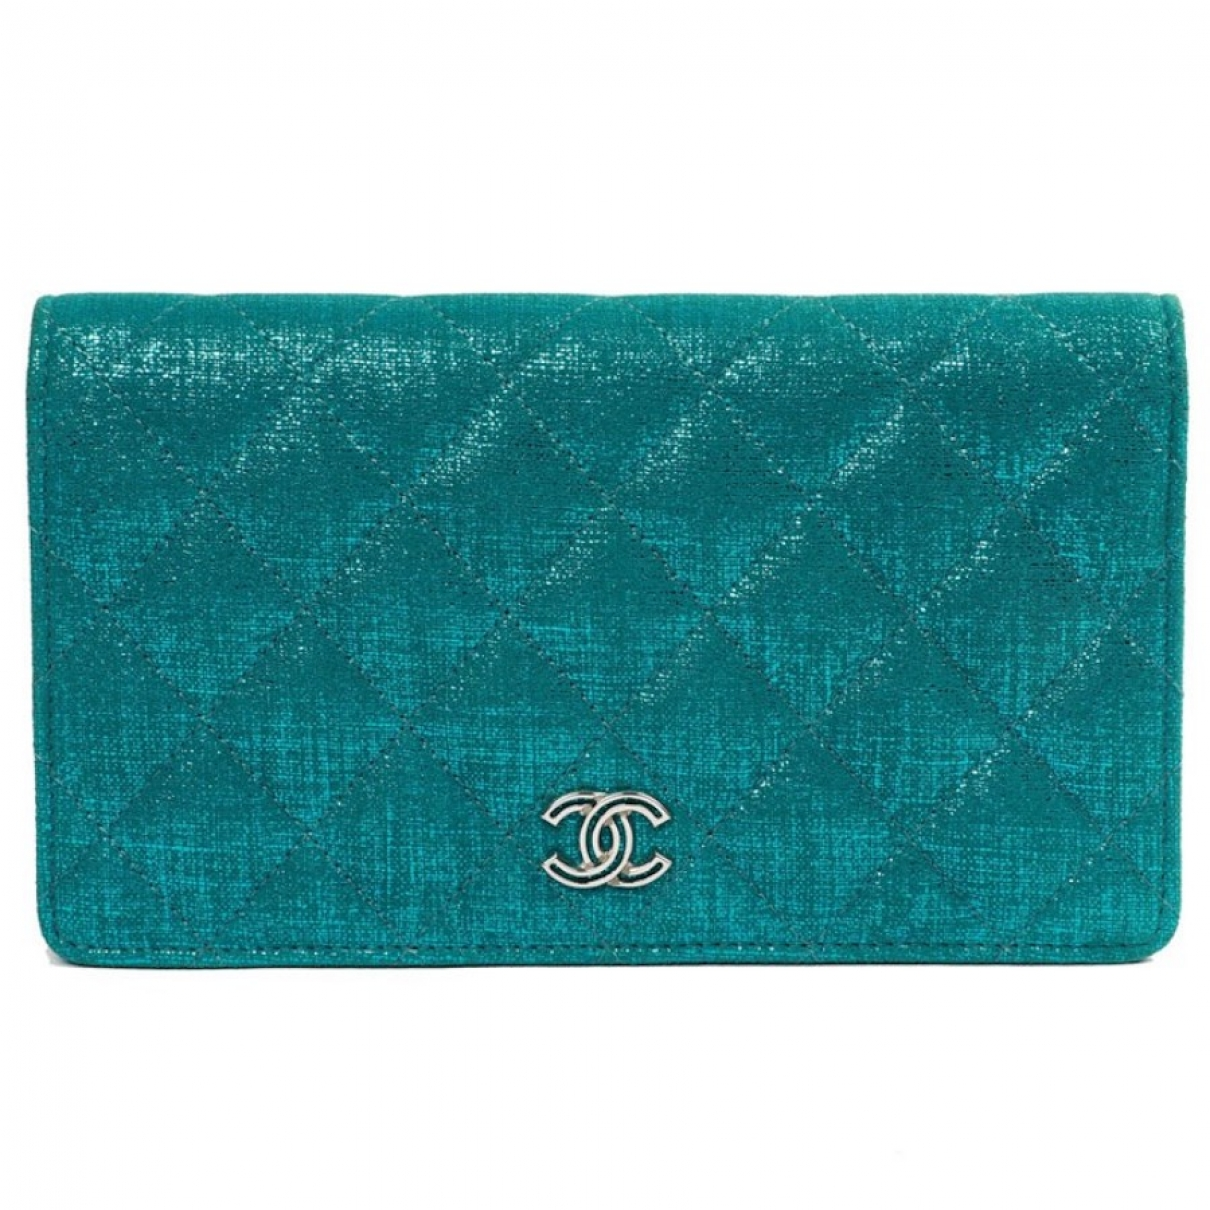 Chanel Timeless/Classique Turquoise Cloth wallet for Women \N